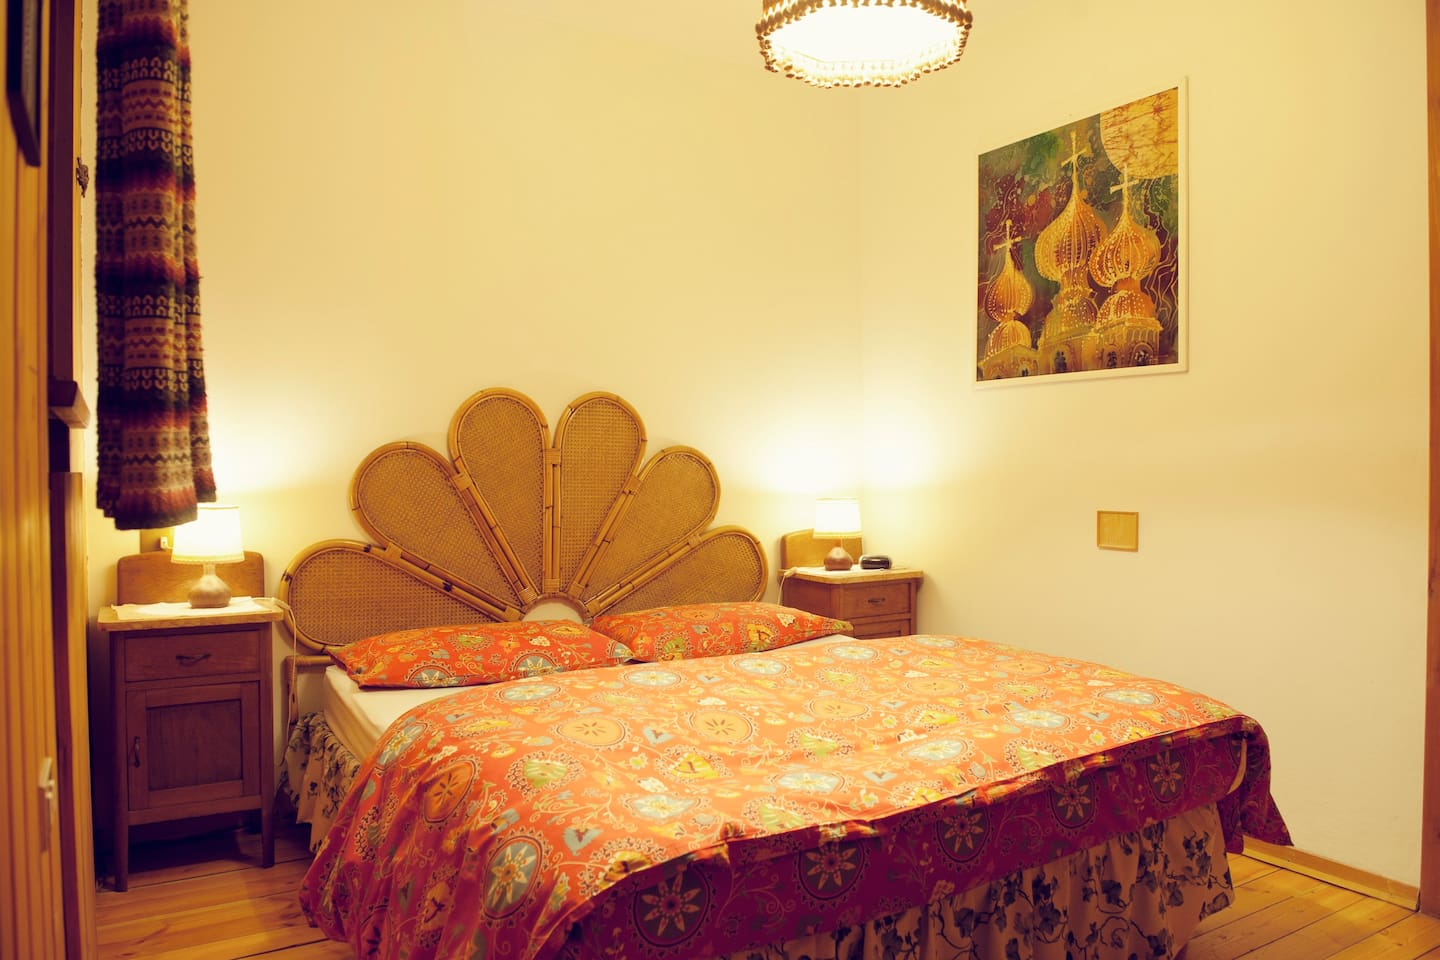 Bed and Breakfast Villa La Bercia ¤¤¤¤